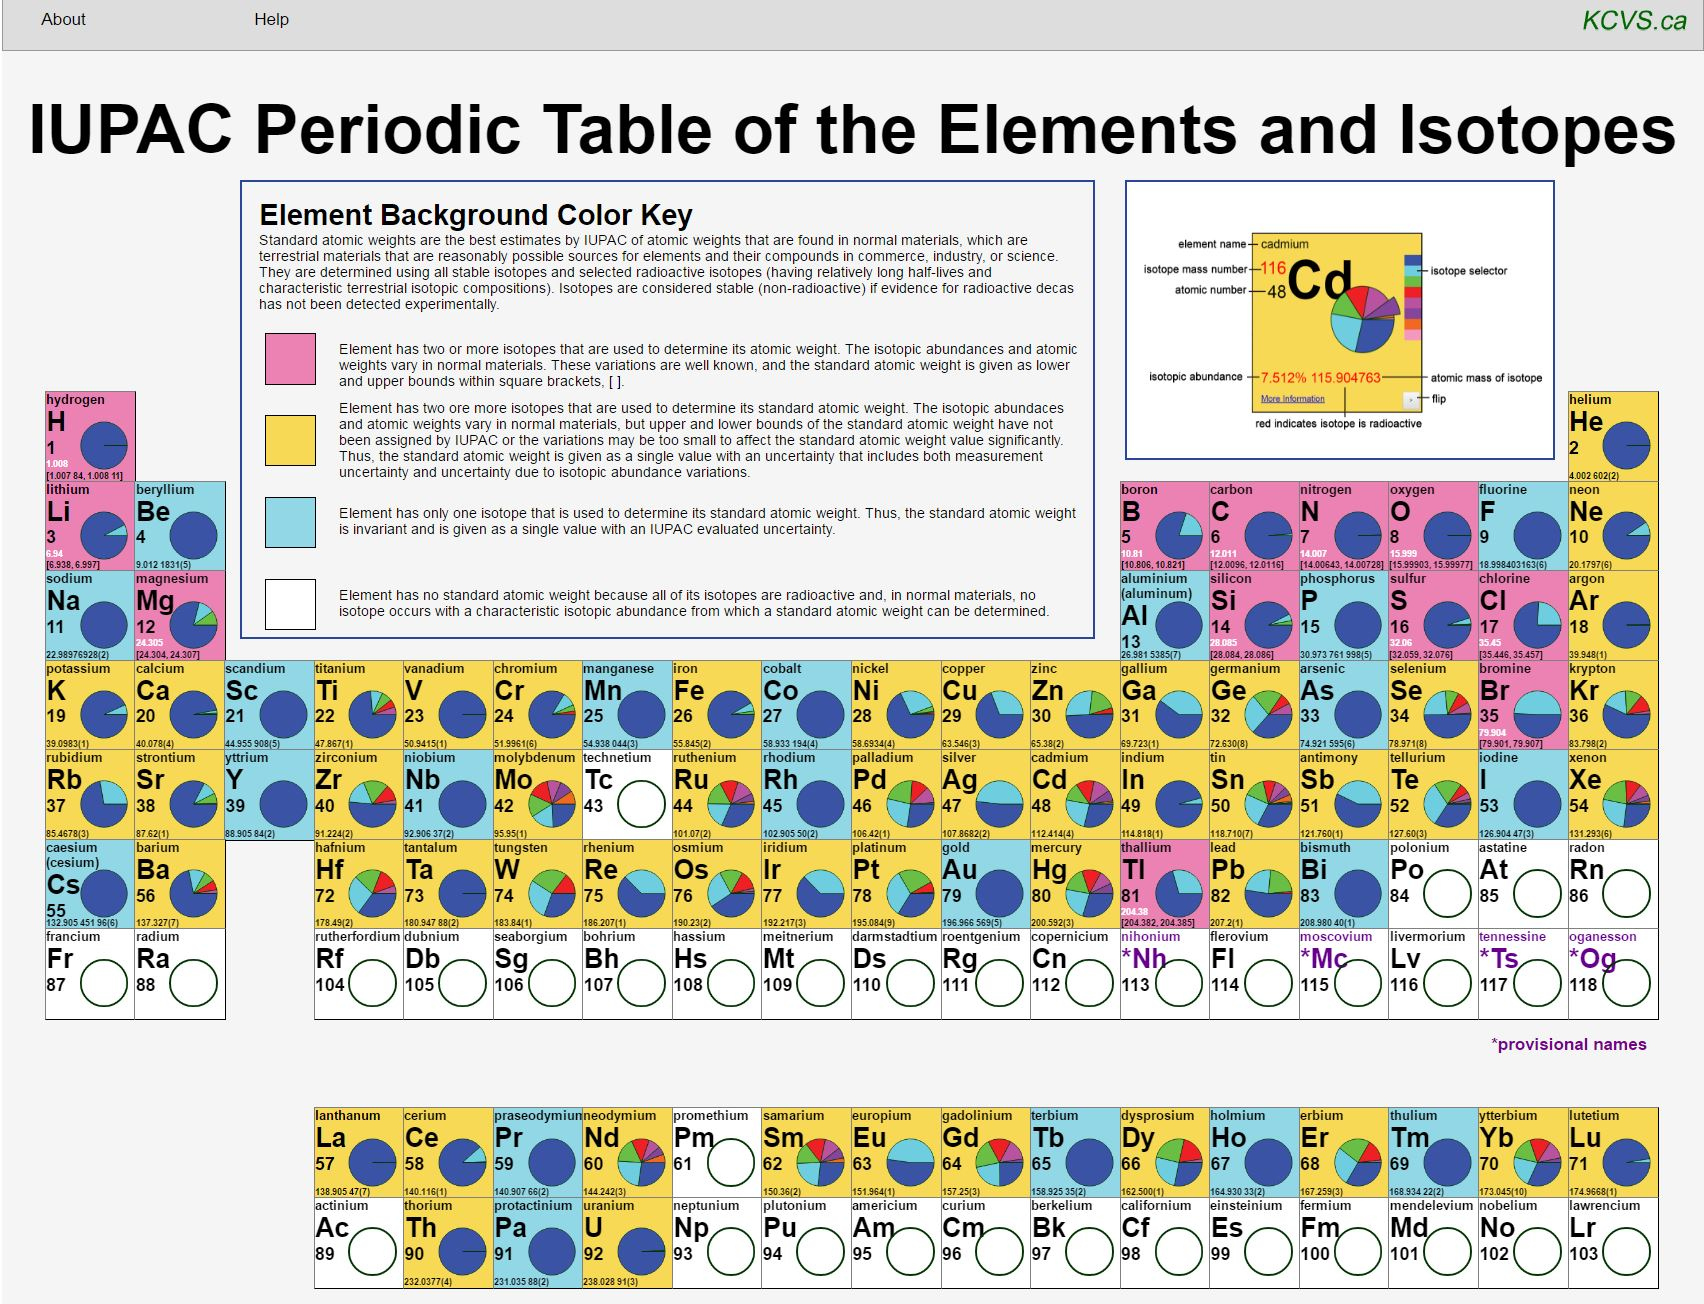 Kcvs plays major role in global launch of new iupac periodic table kcvs plays major role in global launch of new iupac periodic table soon to be used worldwide news the kings university gamestrikefo Images